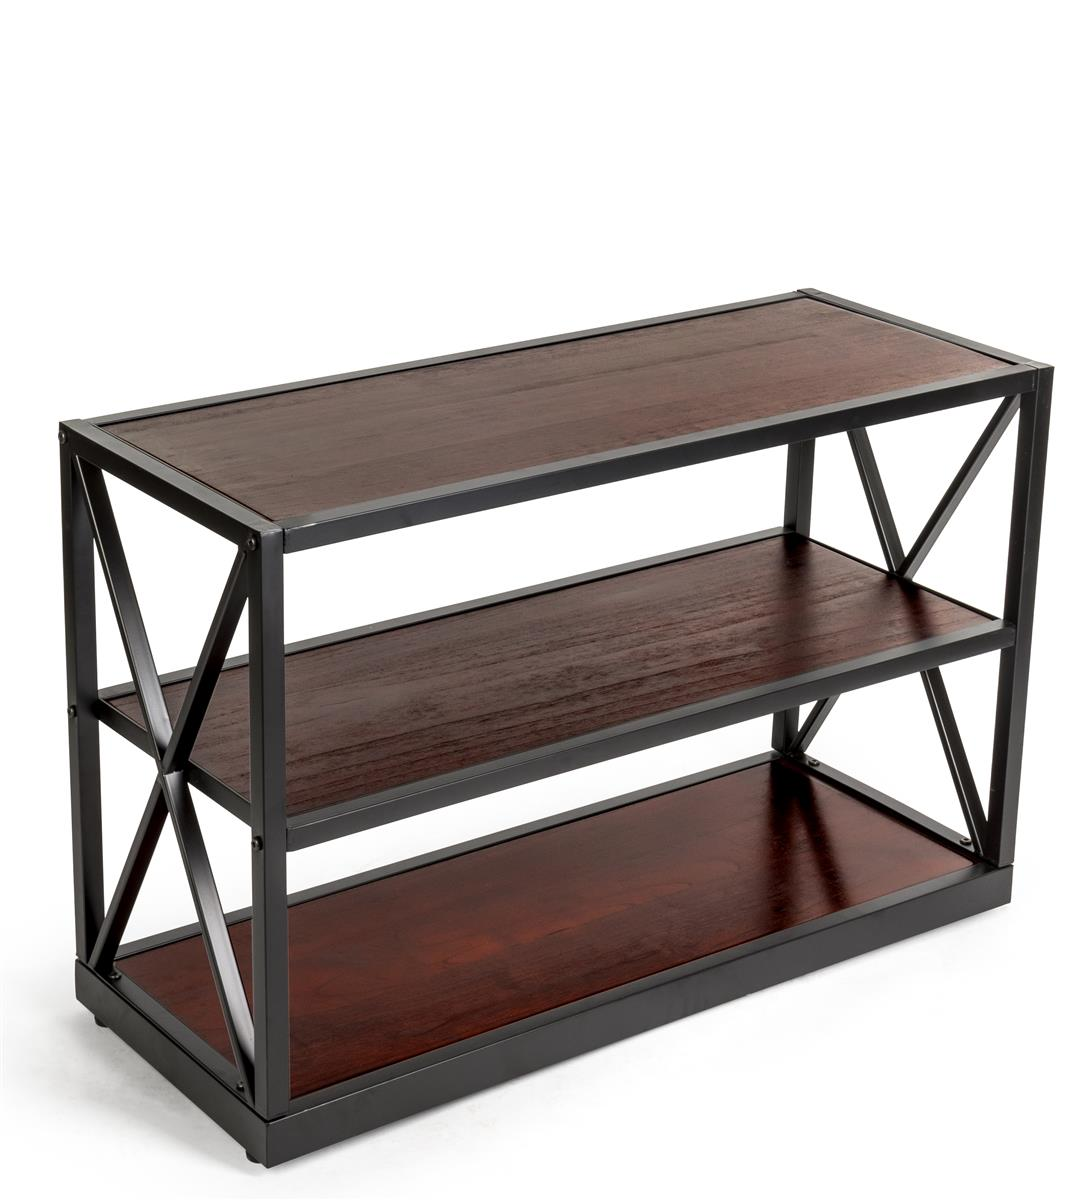 Steel Frame X Sided Shelving Unit With 3 Solid Wood Tiers Open Back Dark Brown